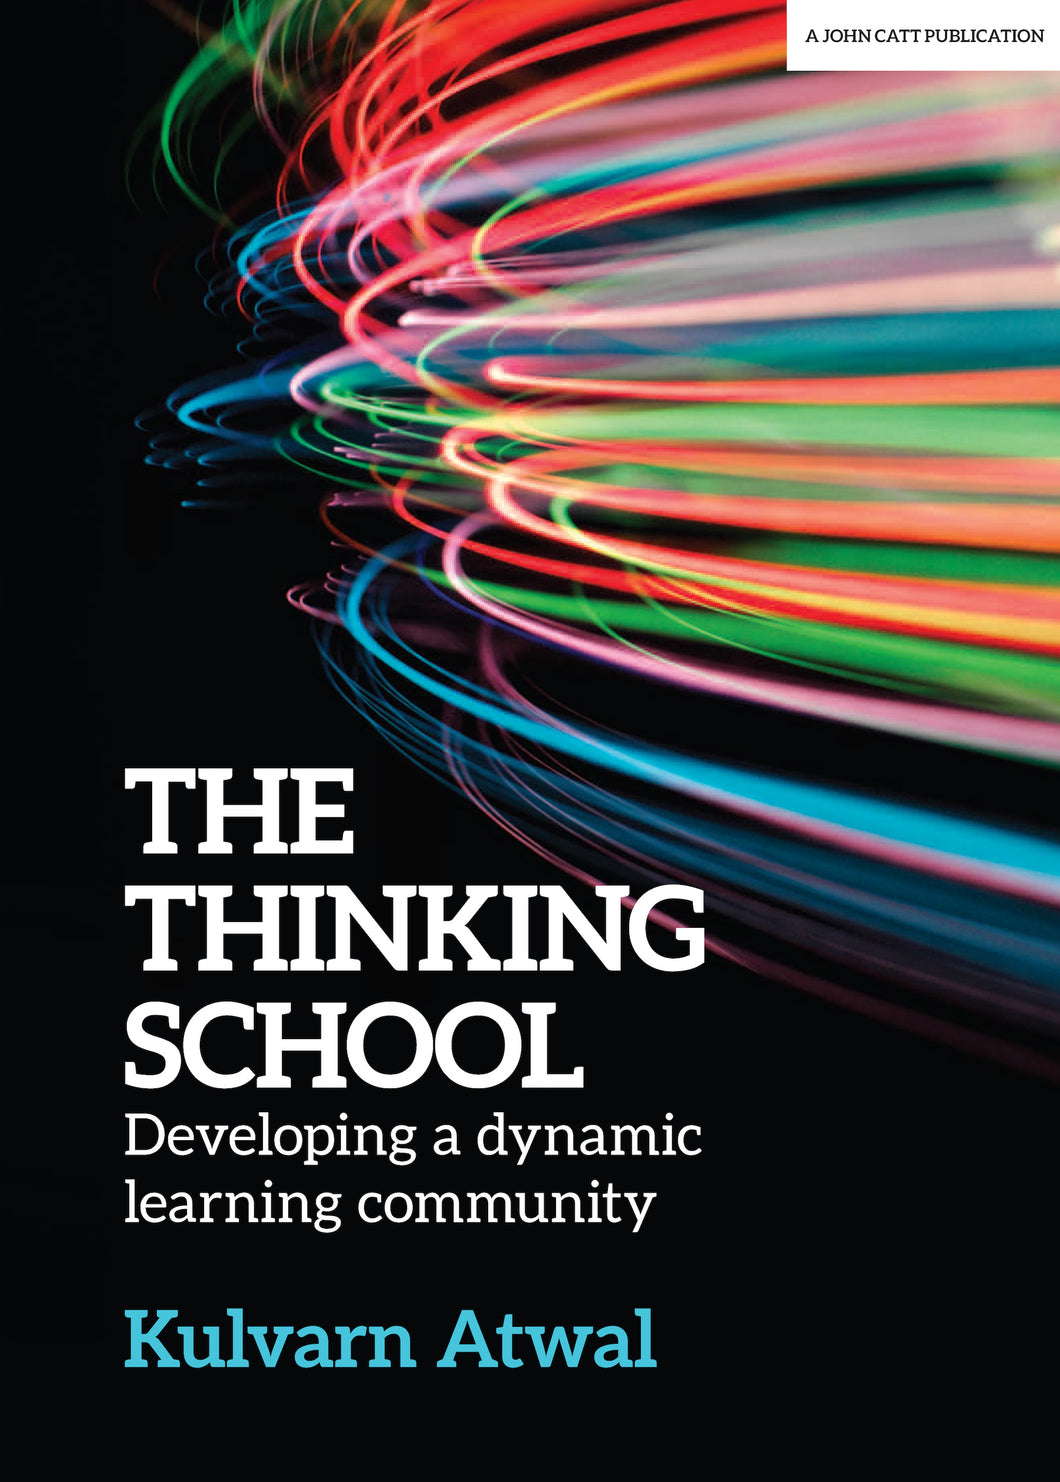 The Thinking School: Developing a Dynamic Learning Community